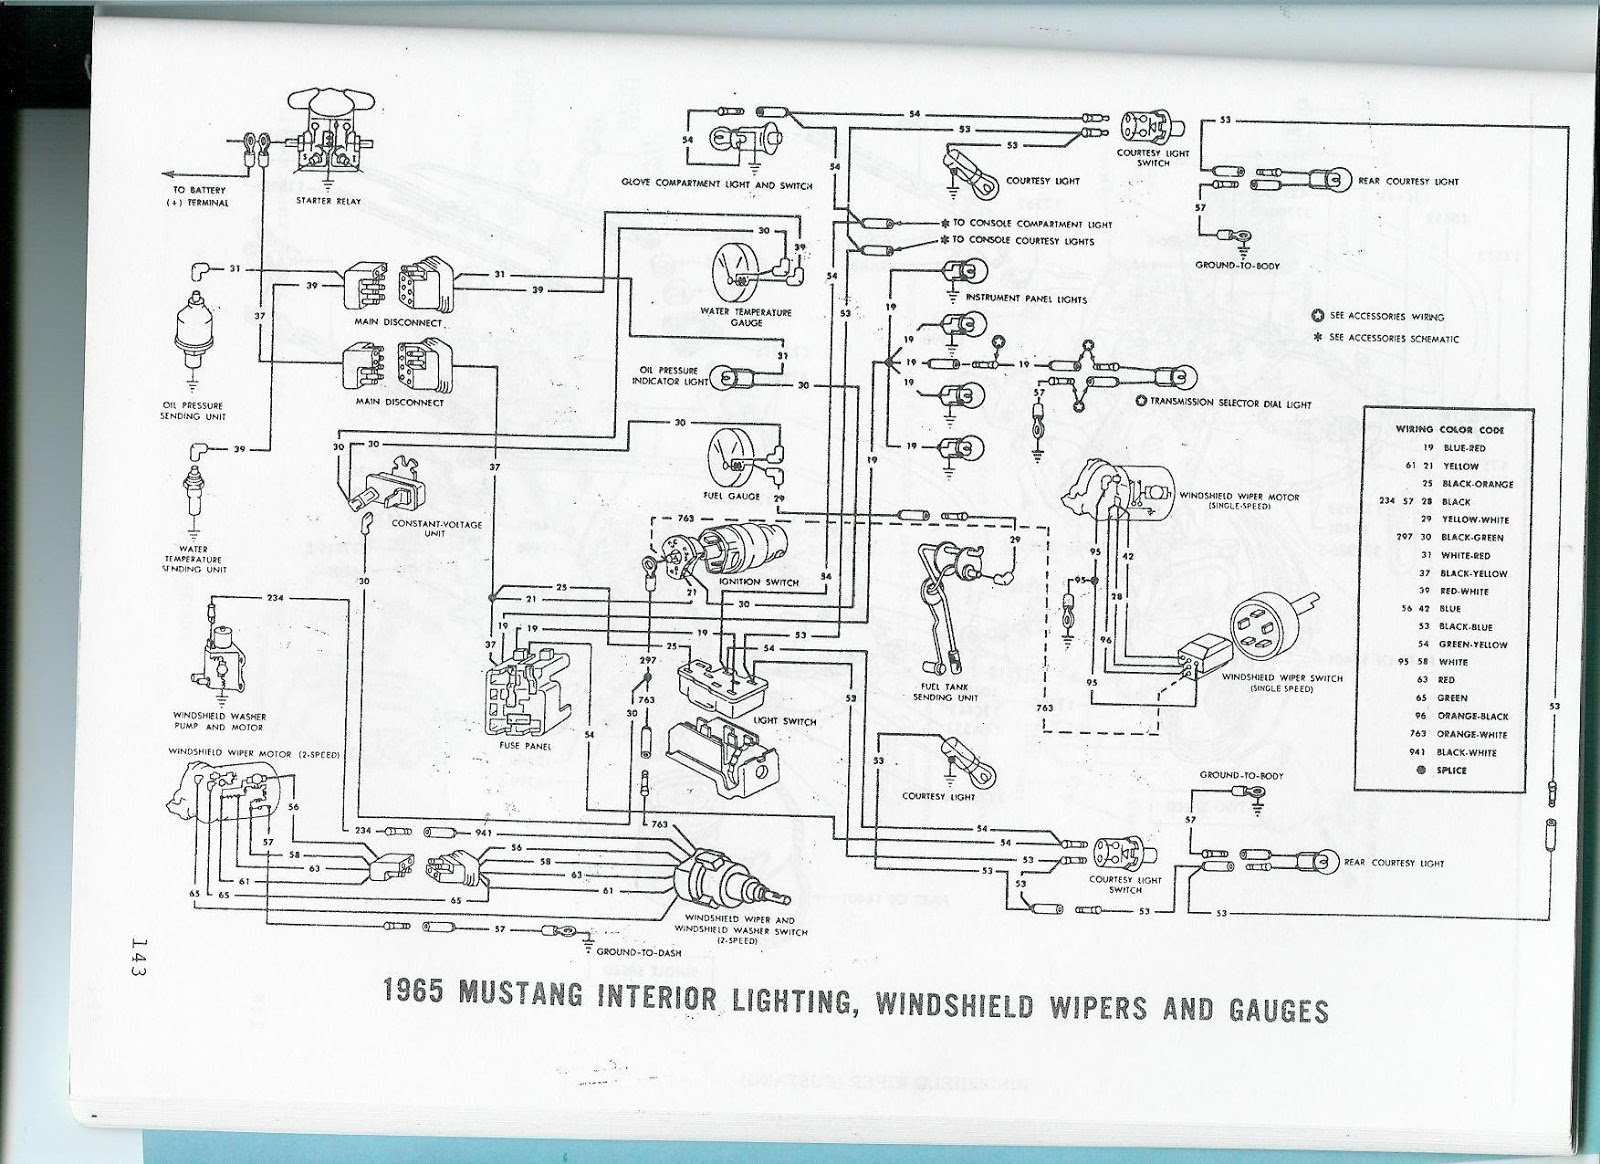 66 Mustang Ignition Wiring Diagram Library Ford The Care And Feeding Of Ponies 1965 Diagrams 1966